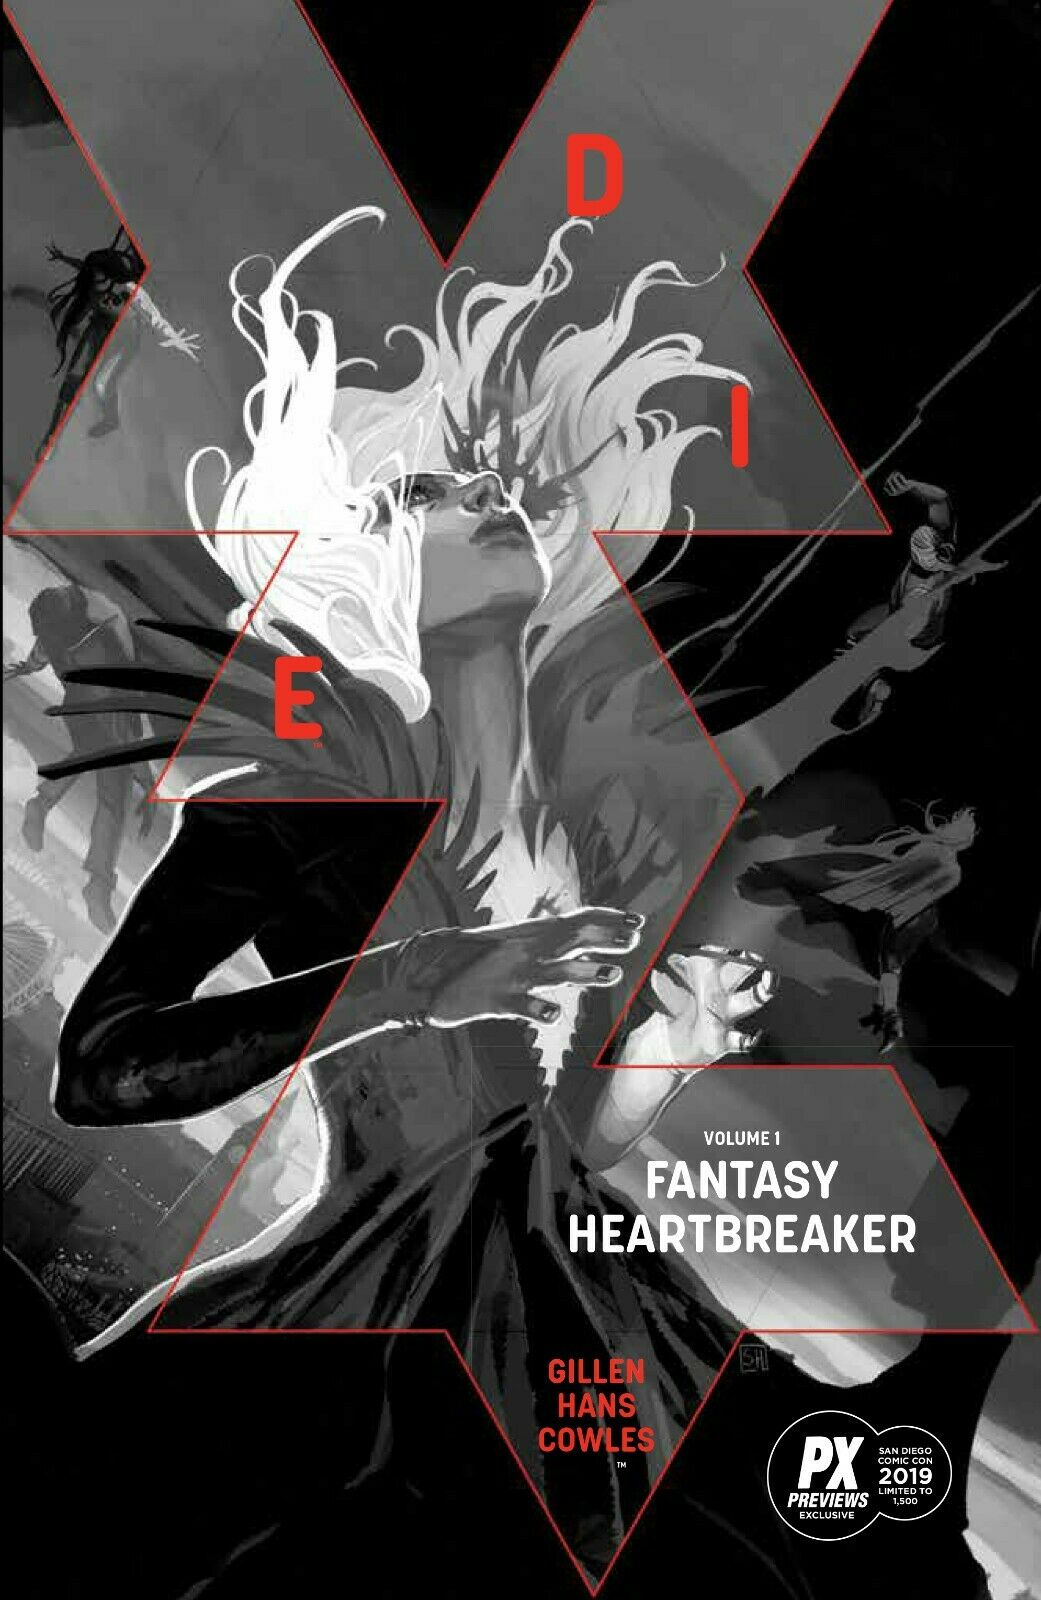 SDCC 2019 EXCLUSIVE DIE TP VOL. 01 FANTASY HEARTBREAKER LTD TO 1500 07/24/19